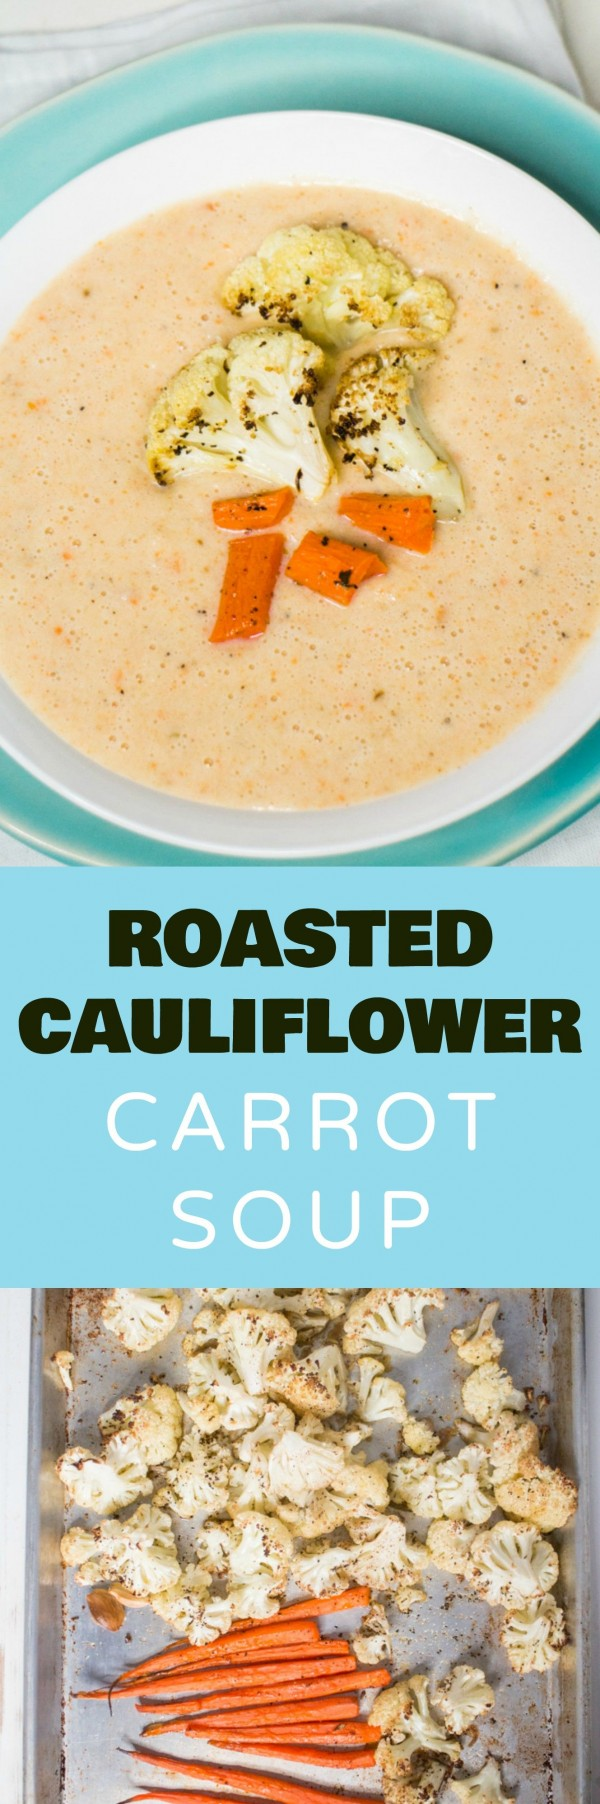 50 Most Delicious and Healthy Vegetarian Recipes - Check out this recipe for roasted cauliflower carrot soup. Yummy! #RecipeIdeas @recipes_to_go